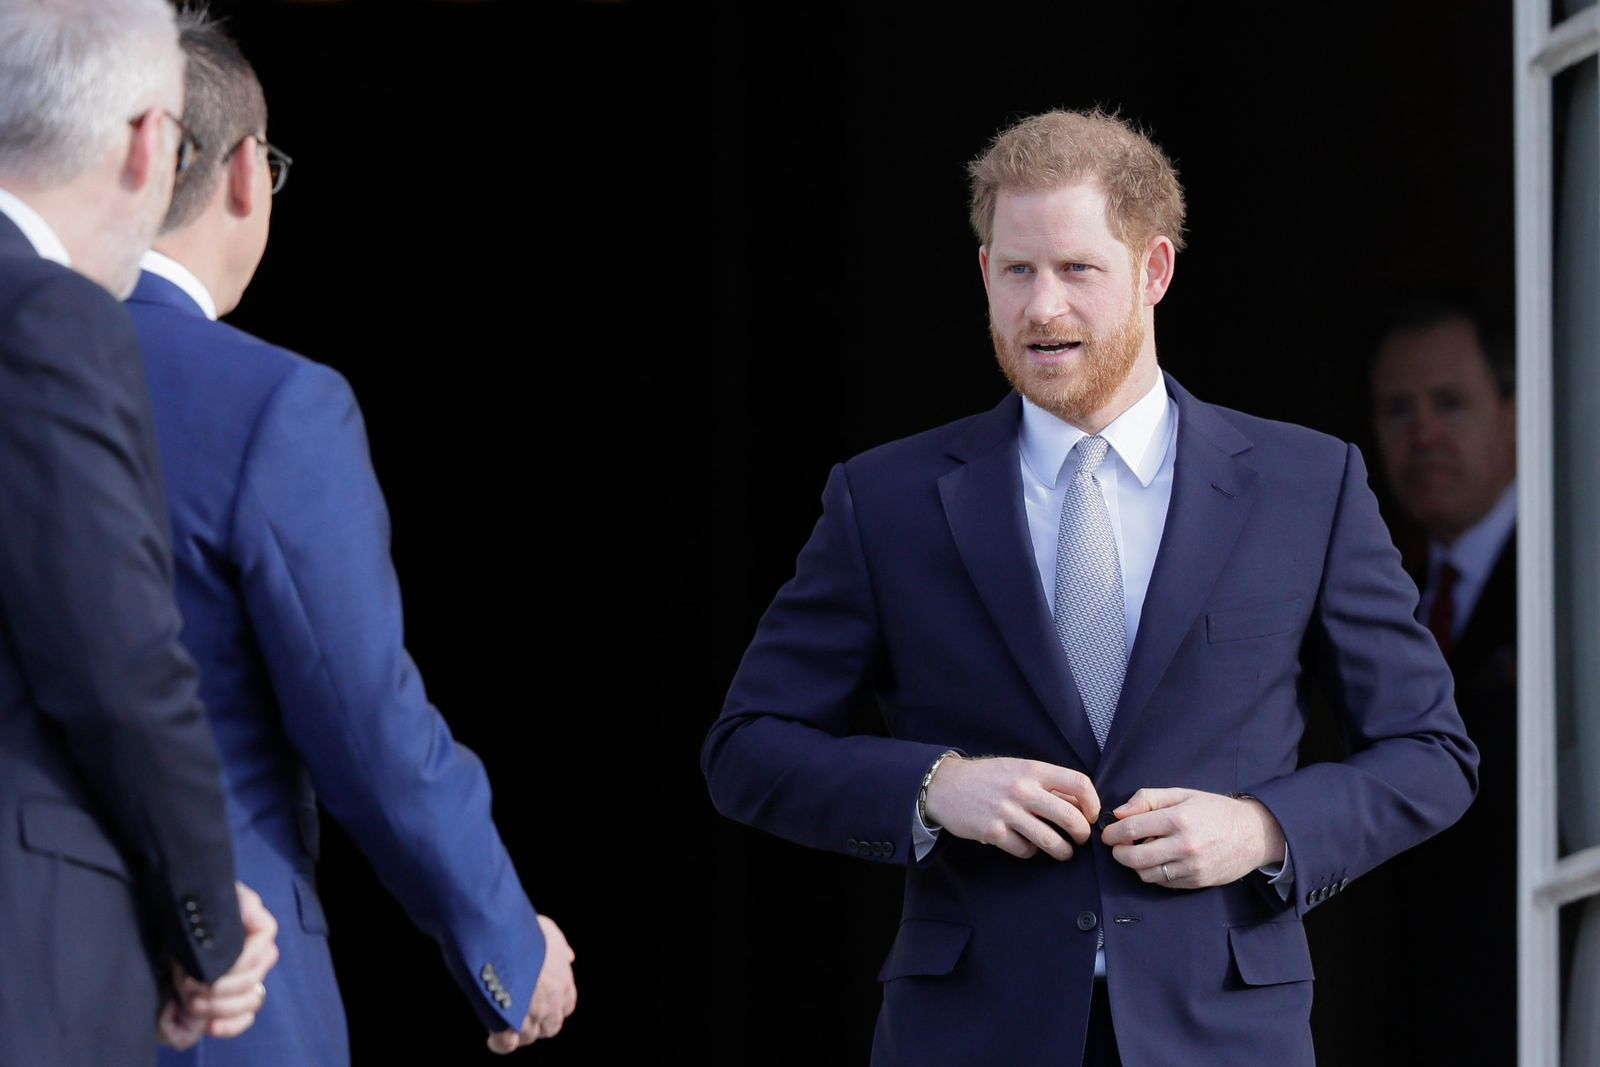 Britain's Prince Harry arrives at the gardens at Buckingham Palace in London, Thursday, Jan. 16, 2020. (AP Photo/Kirsty Wigglesworth)